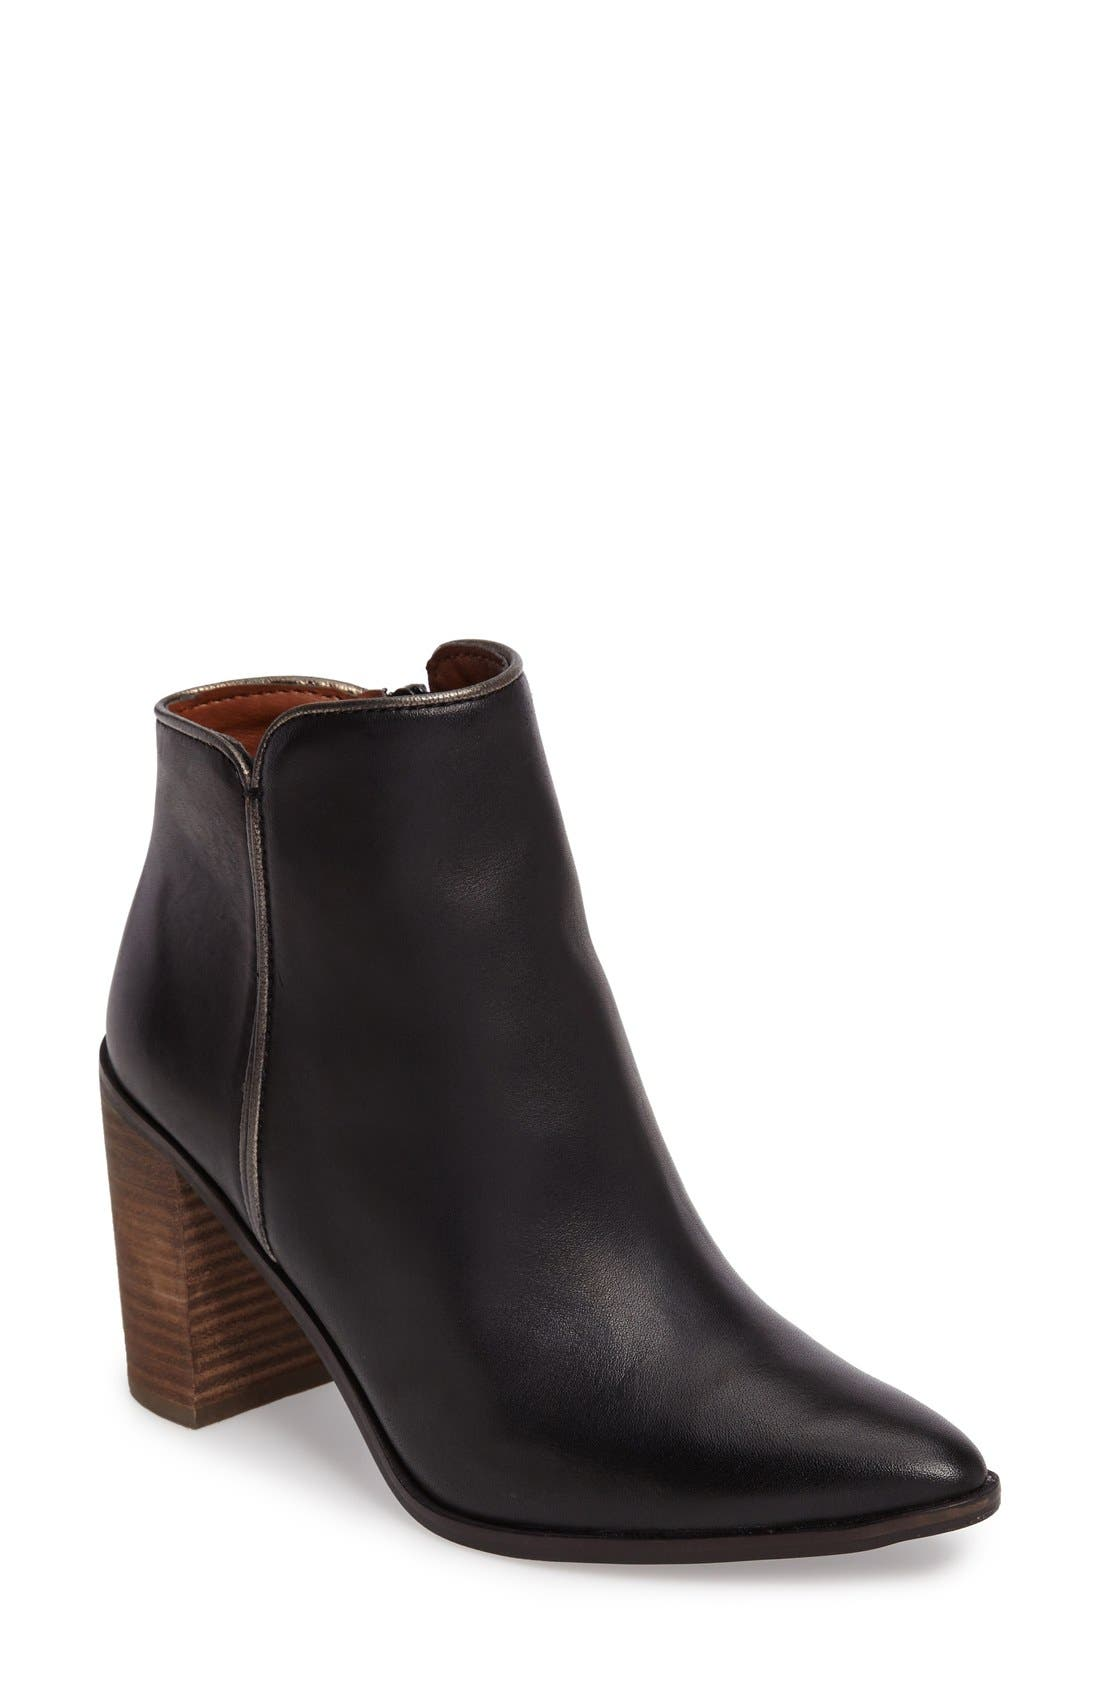 Mytah Pointy Toe Bootie,                         Main,                         color, Black Leather